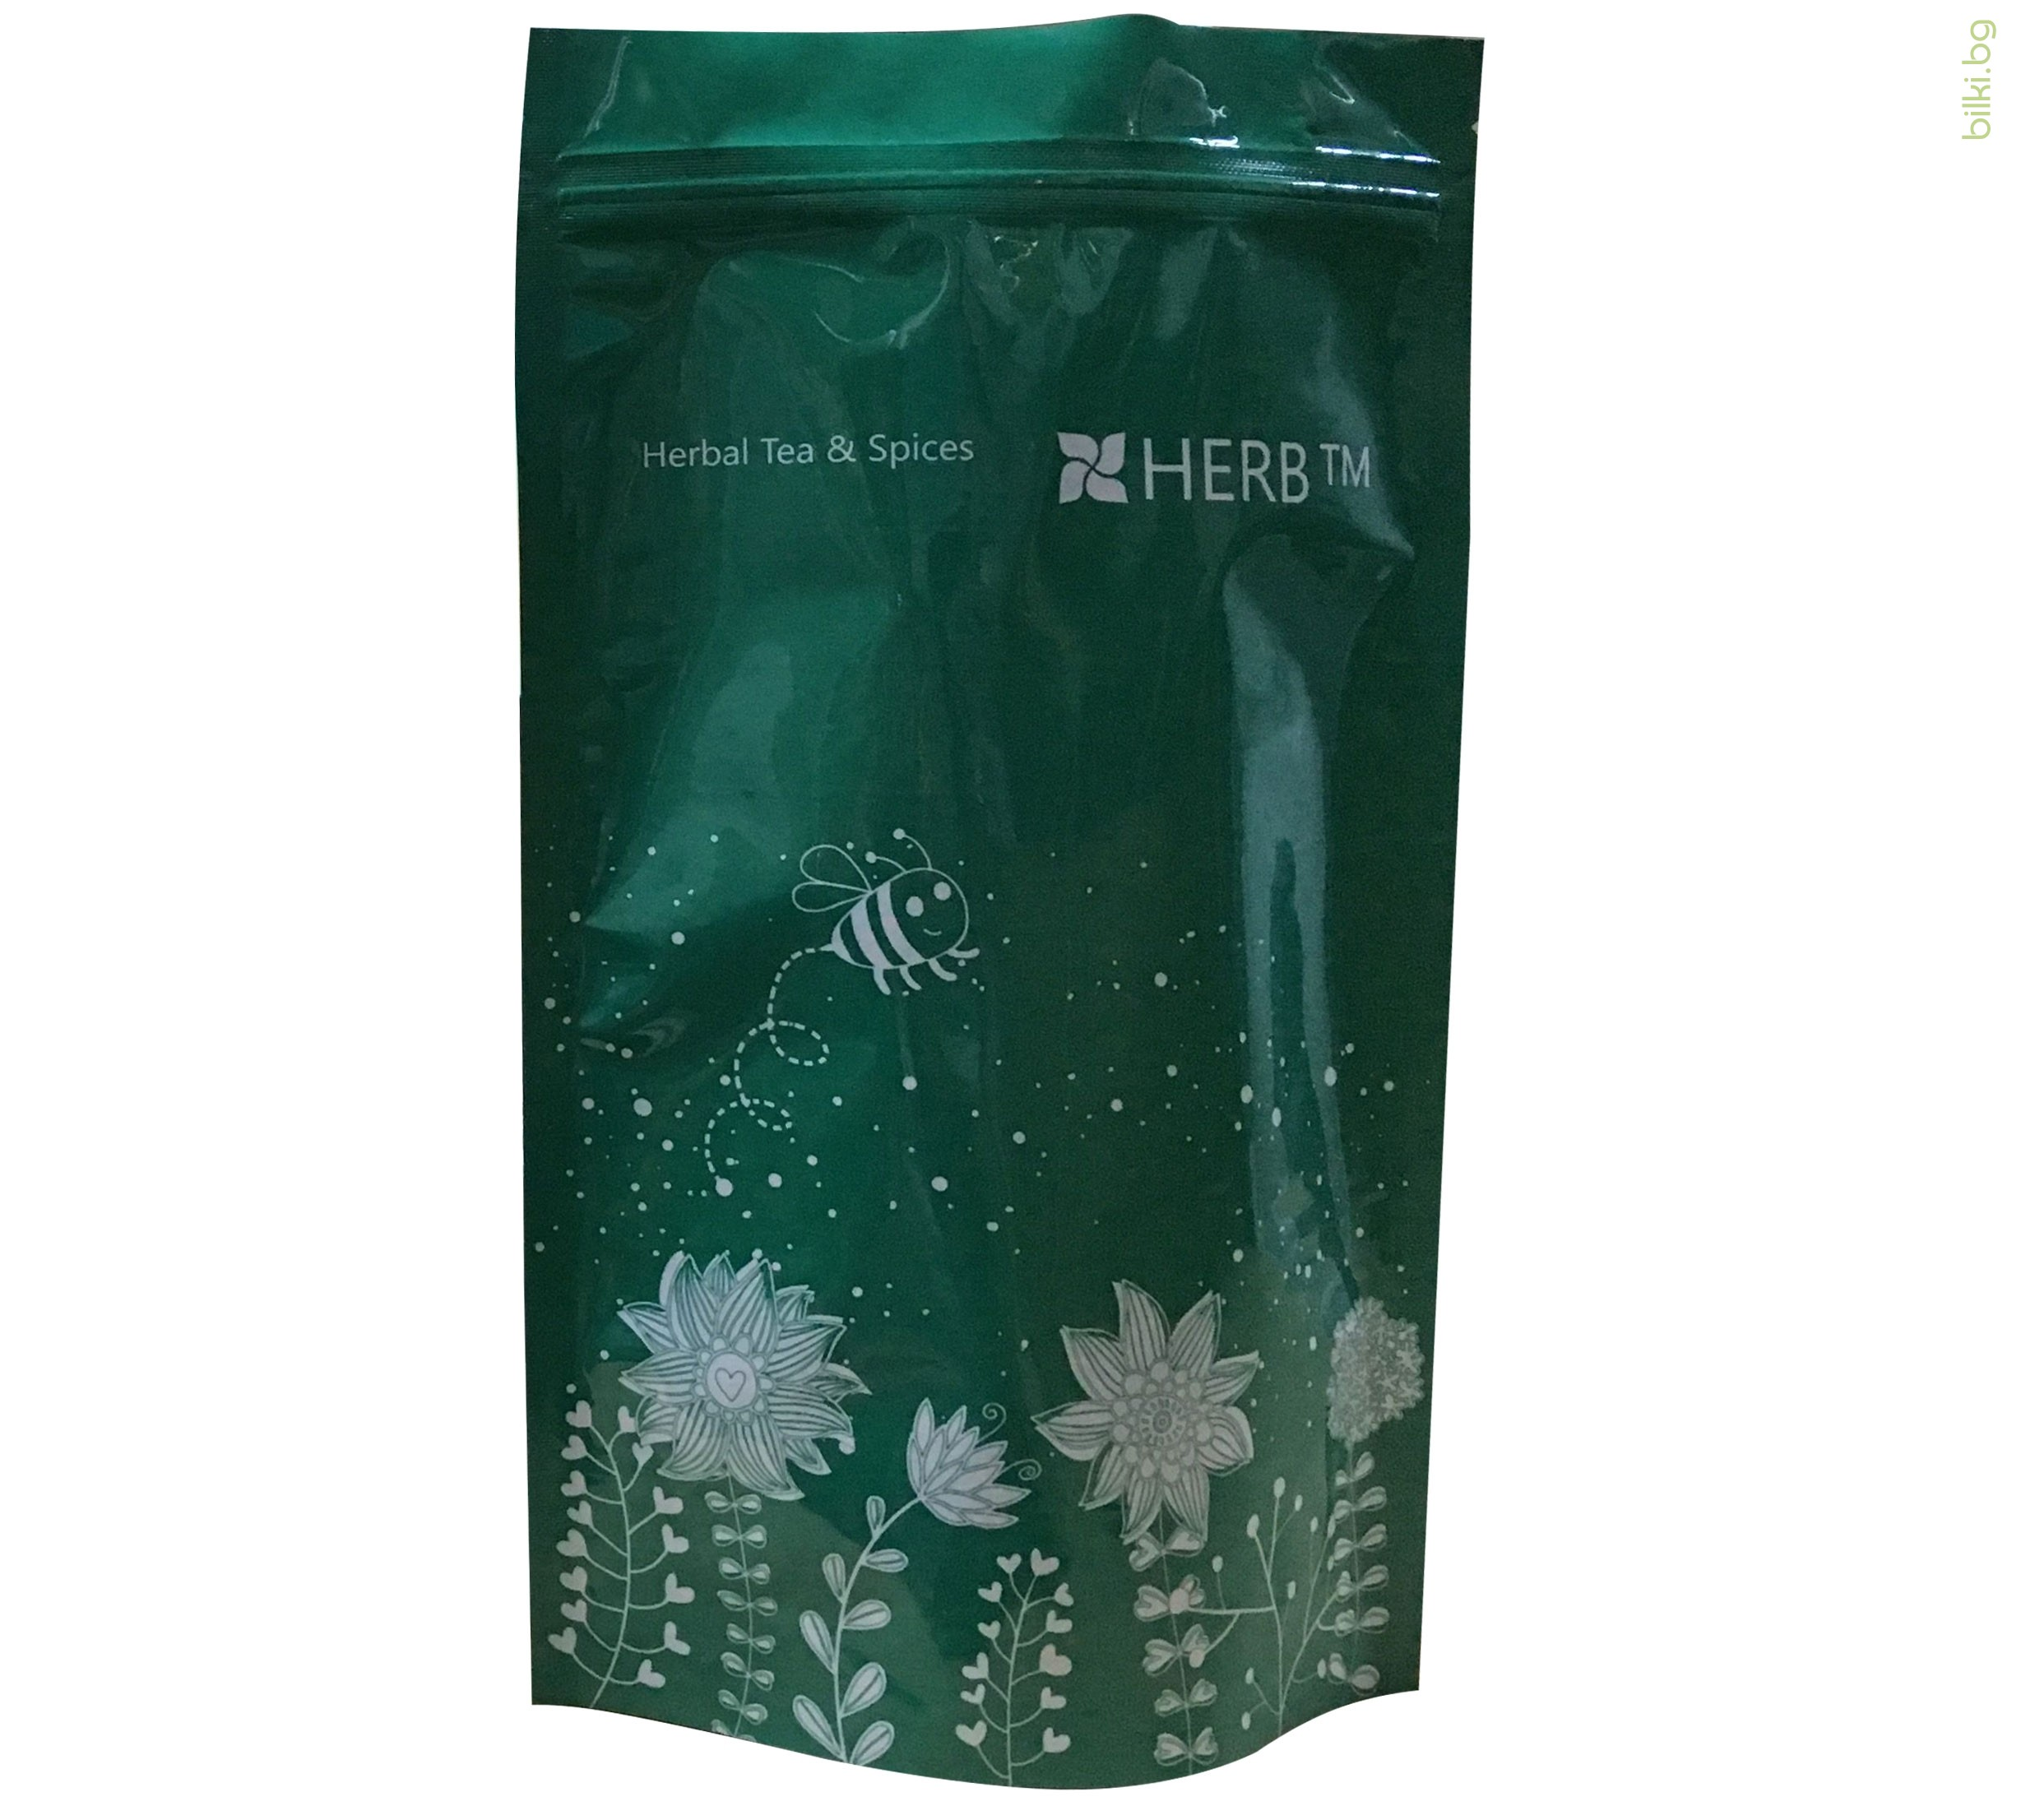 insomnia,migrain,menopause,disorders of the nervous system,herbal tea,nervous system